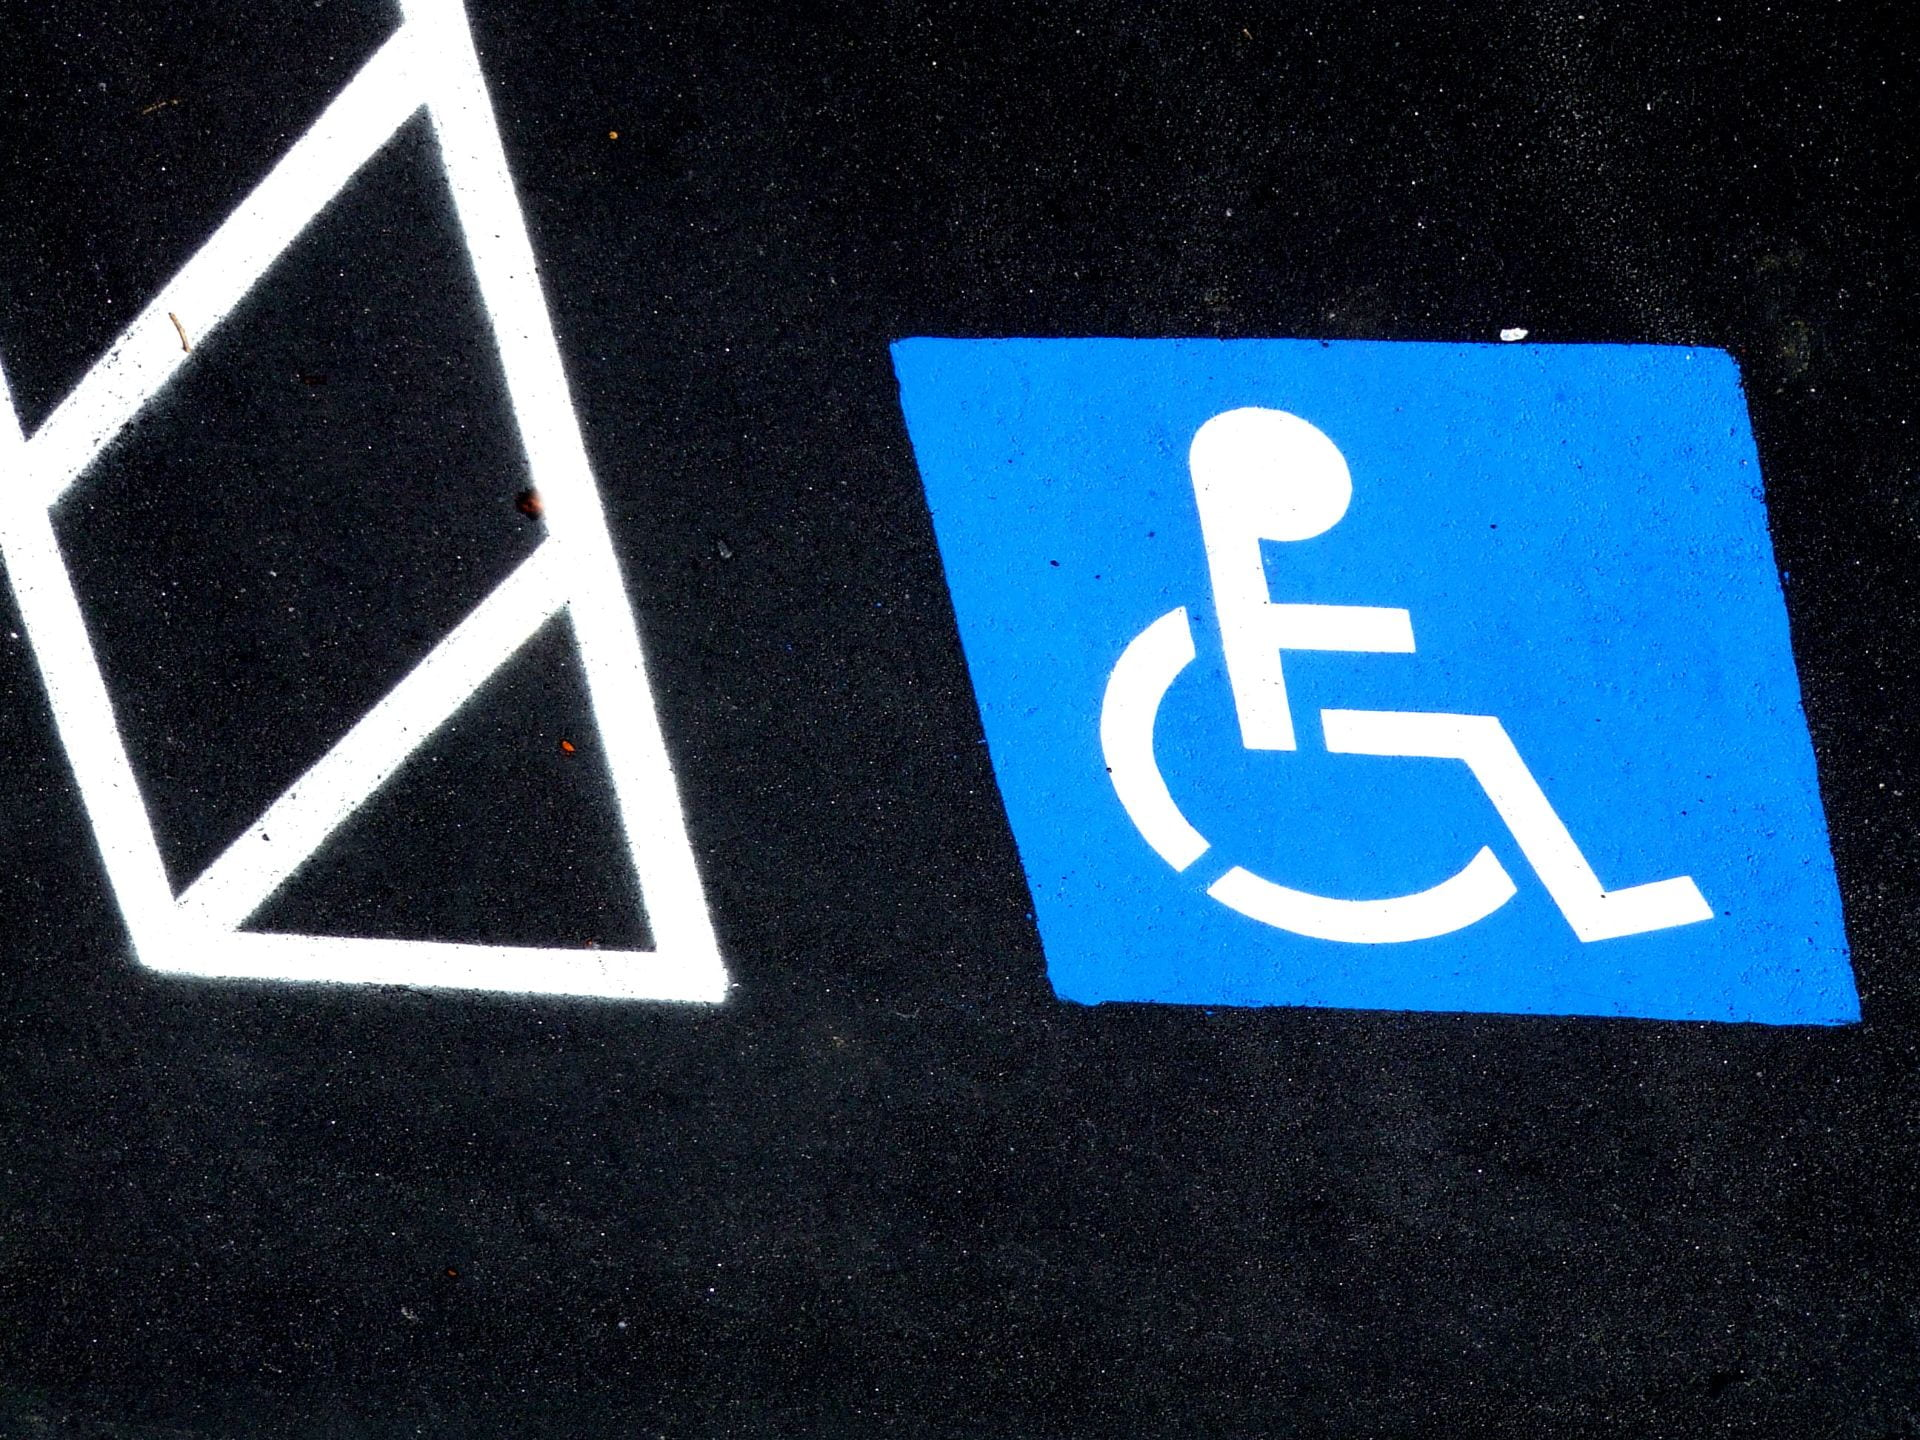 Parking spot reserved for people with disabilities